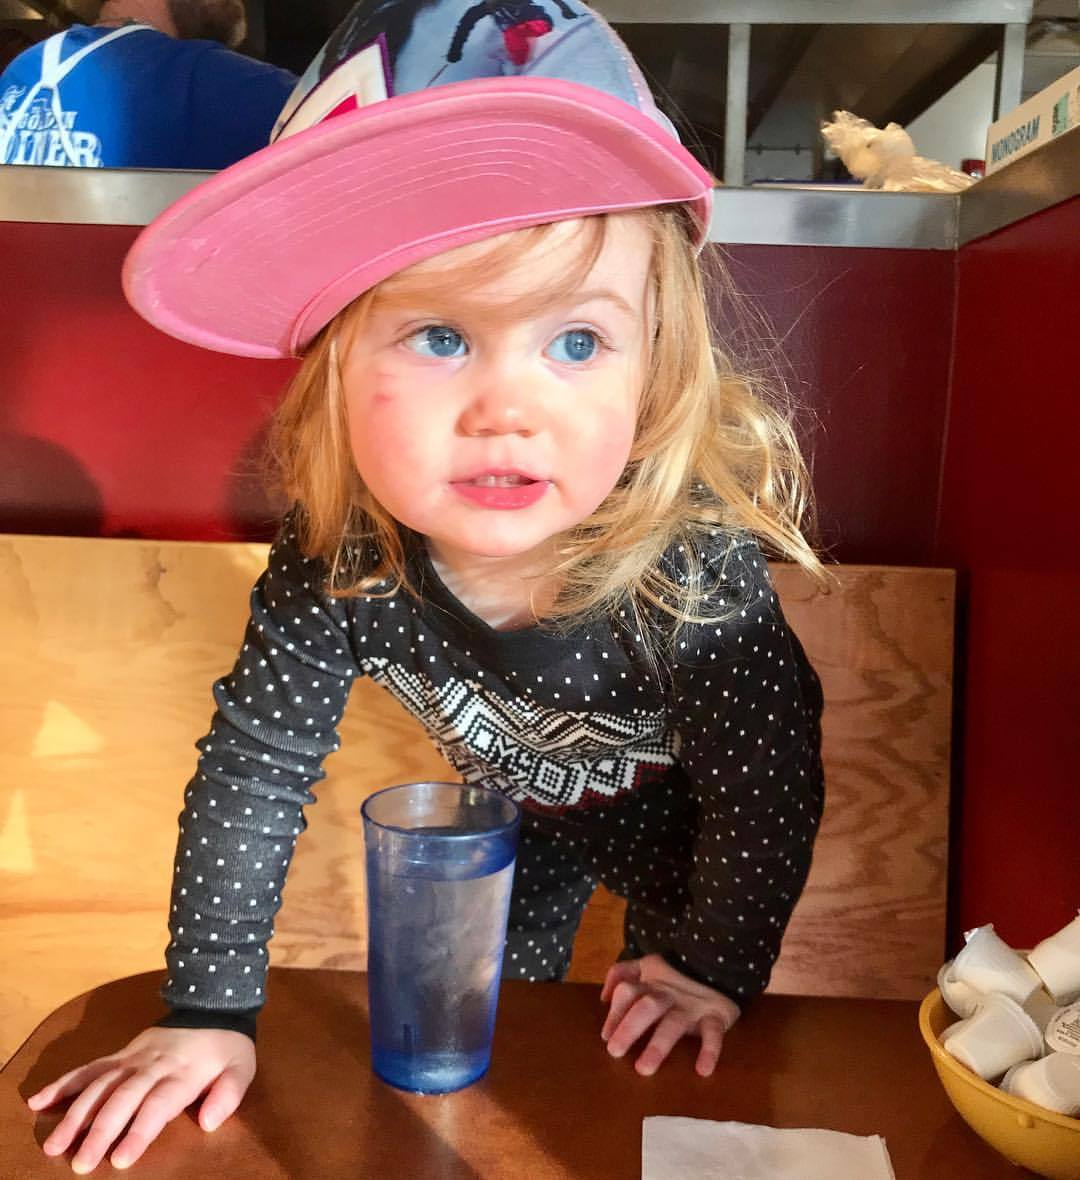 Breakfast Blue Eyed Beauty … having a 2 year old is awesome! (at The Golden Diner)https://www.instagram.com/p/Bu__FIvl8g6/?utm_source=ig_tumblr_share&igshid=1pix9heyt45sd